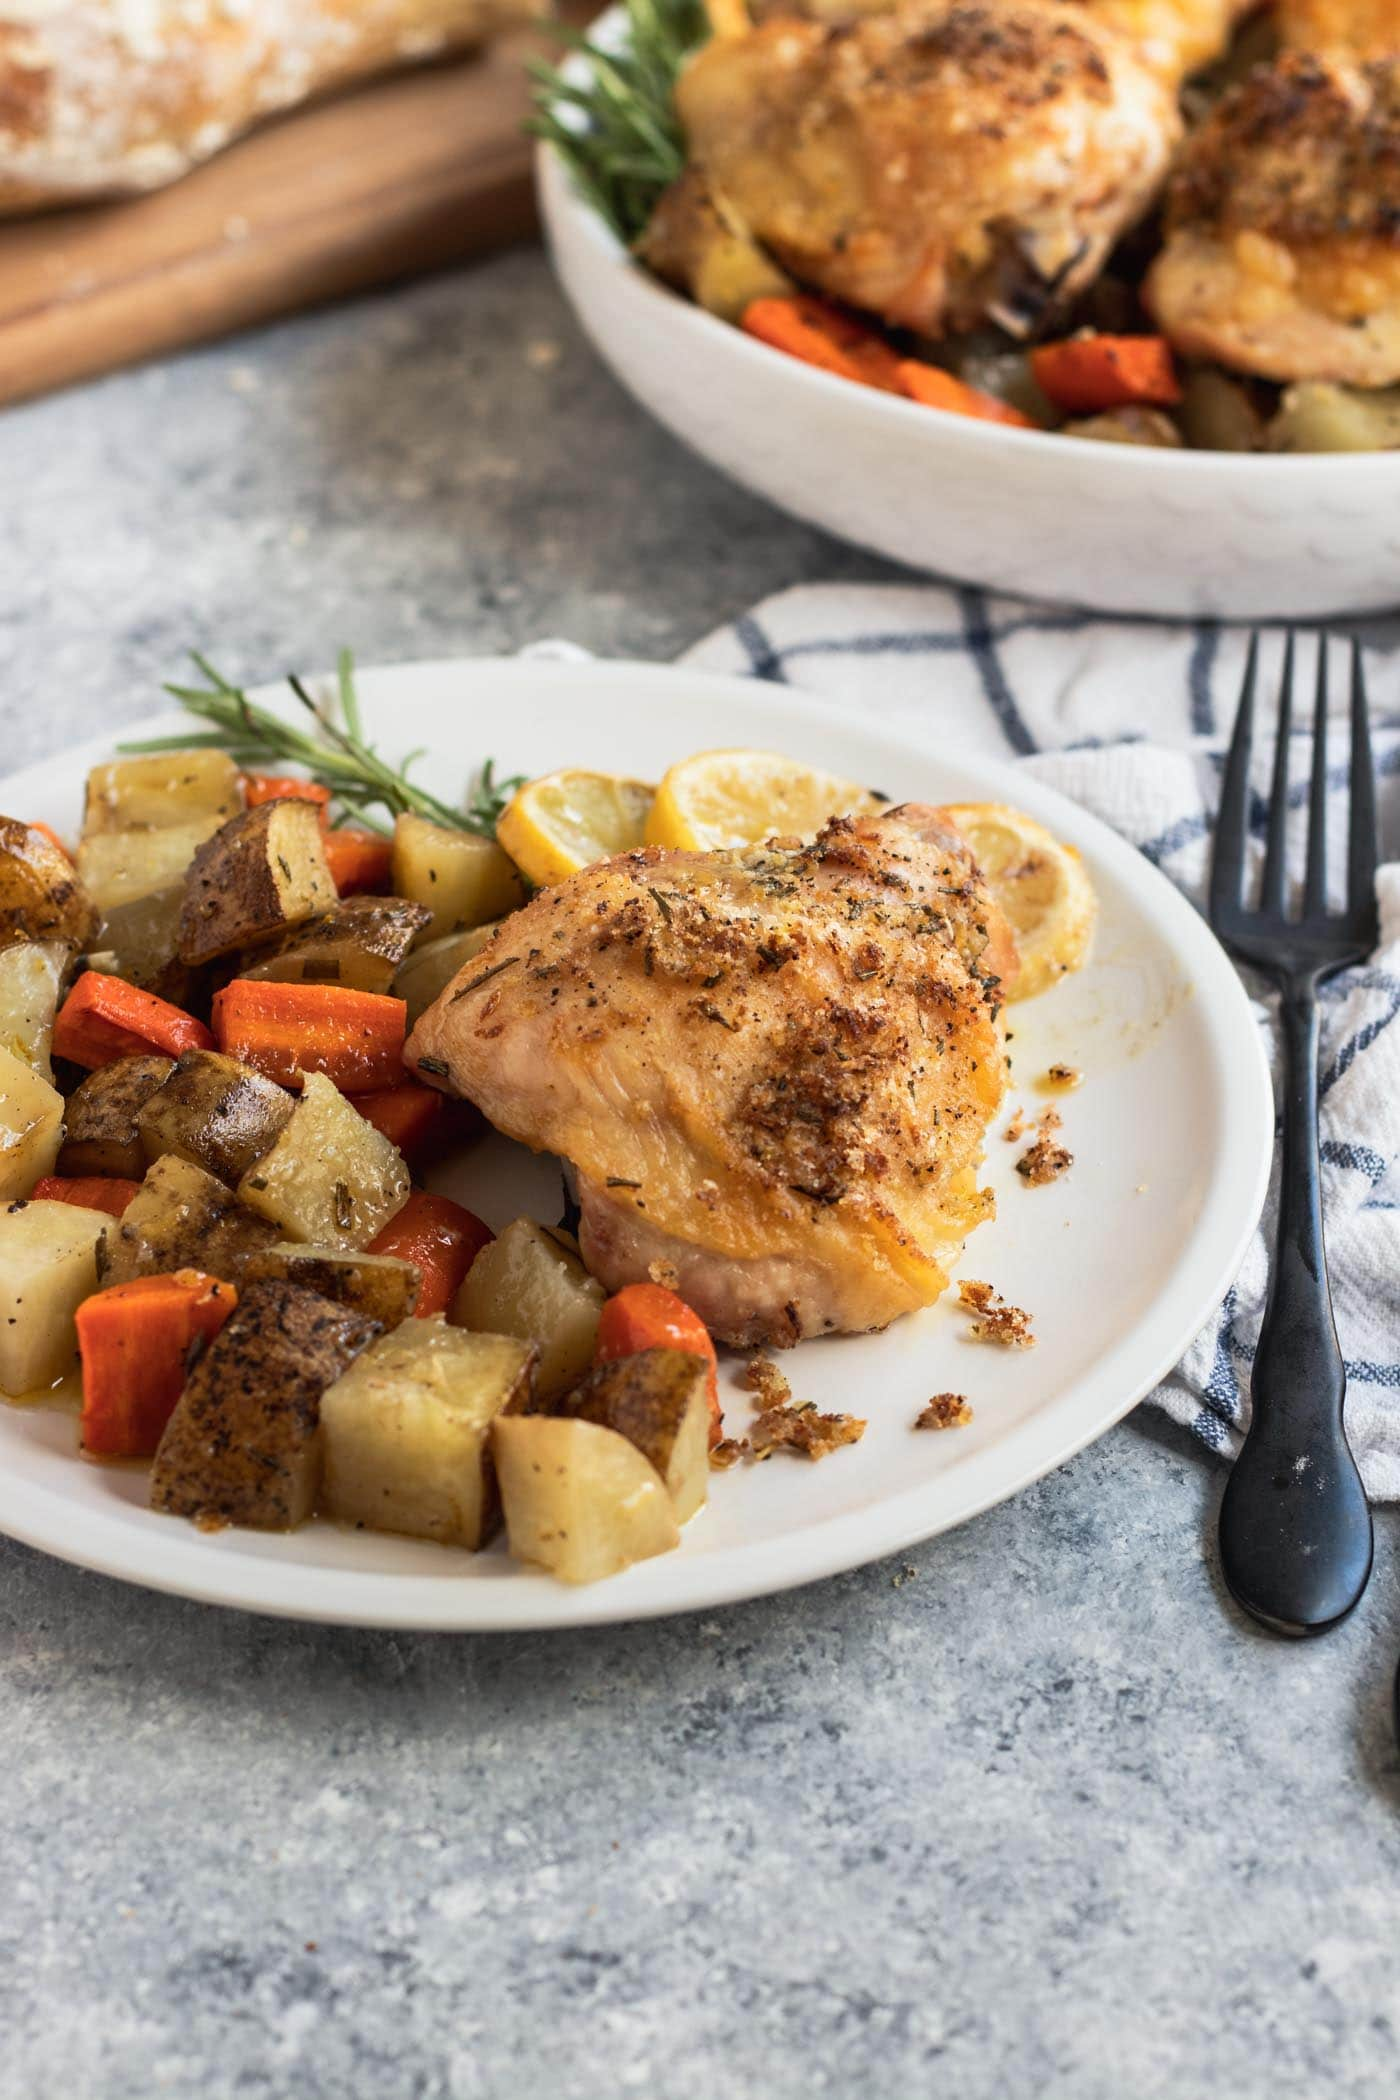 photo of the baked chicken and sides in sheet pan dinner recipe by top Houston lifestyle blogger Ashley Rose of Sugar & Cloth